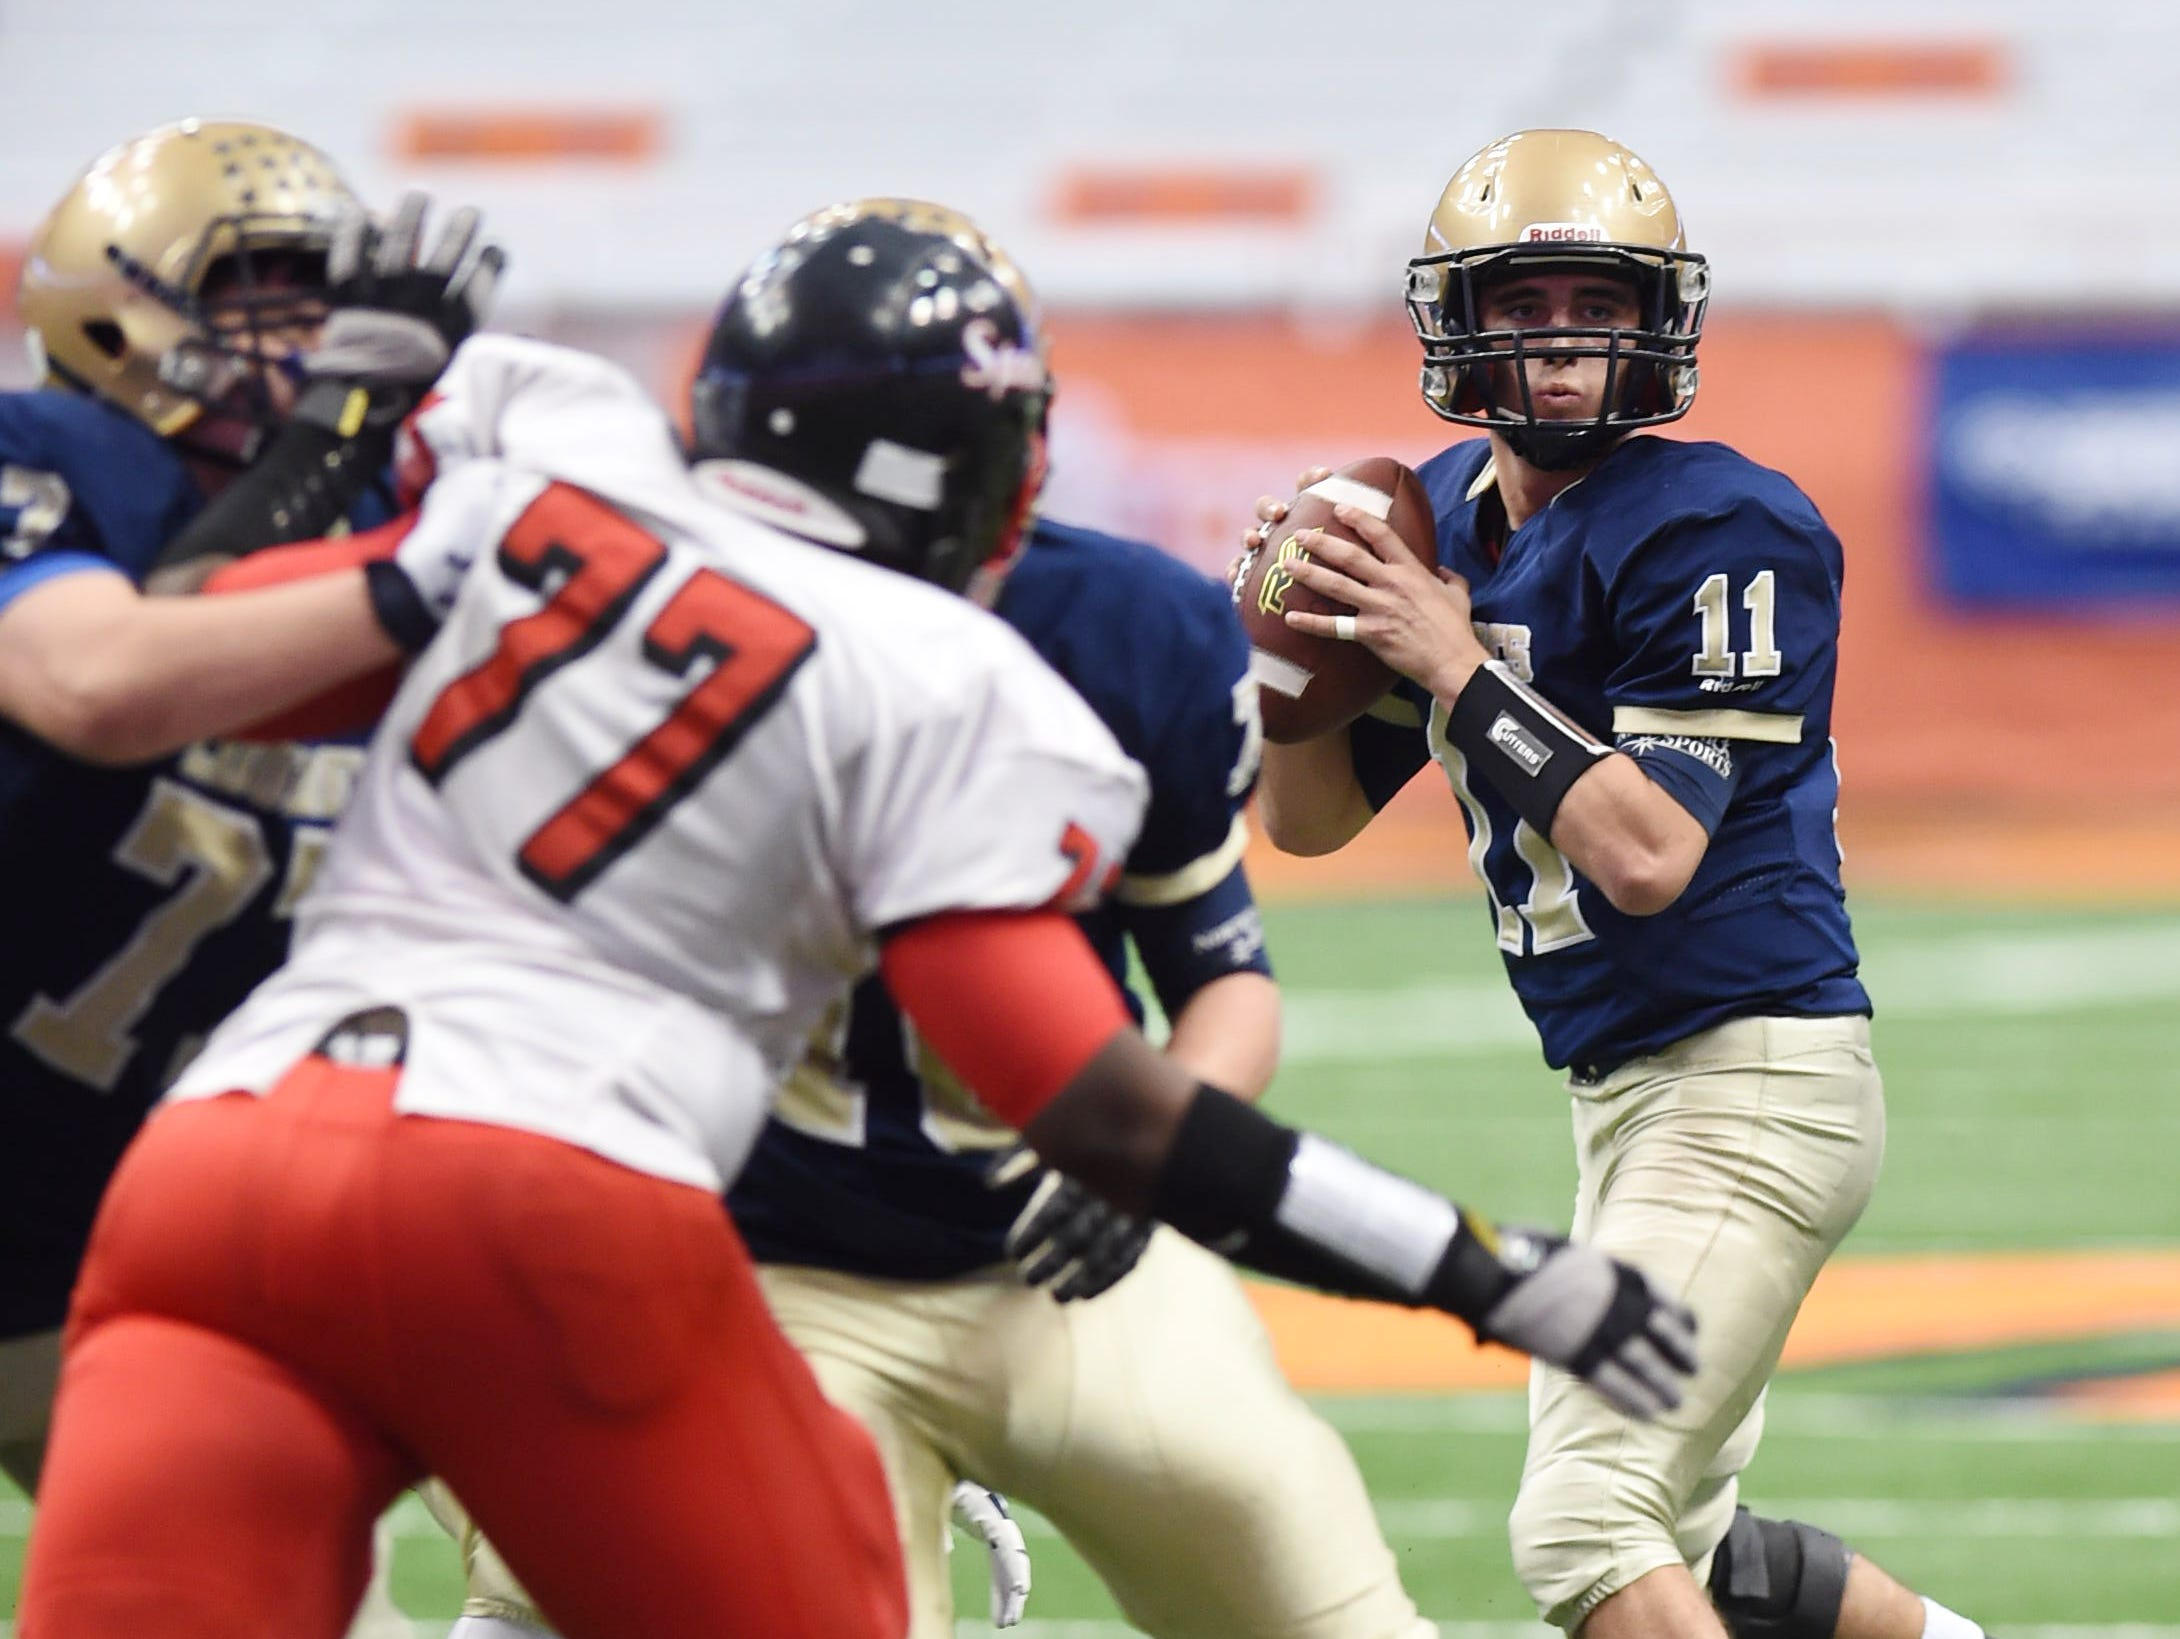 Lourdes' Dean Rotger looks to pass the ball during the New York State Championship final versus South Park in Syracuse on Friday.